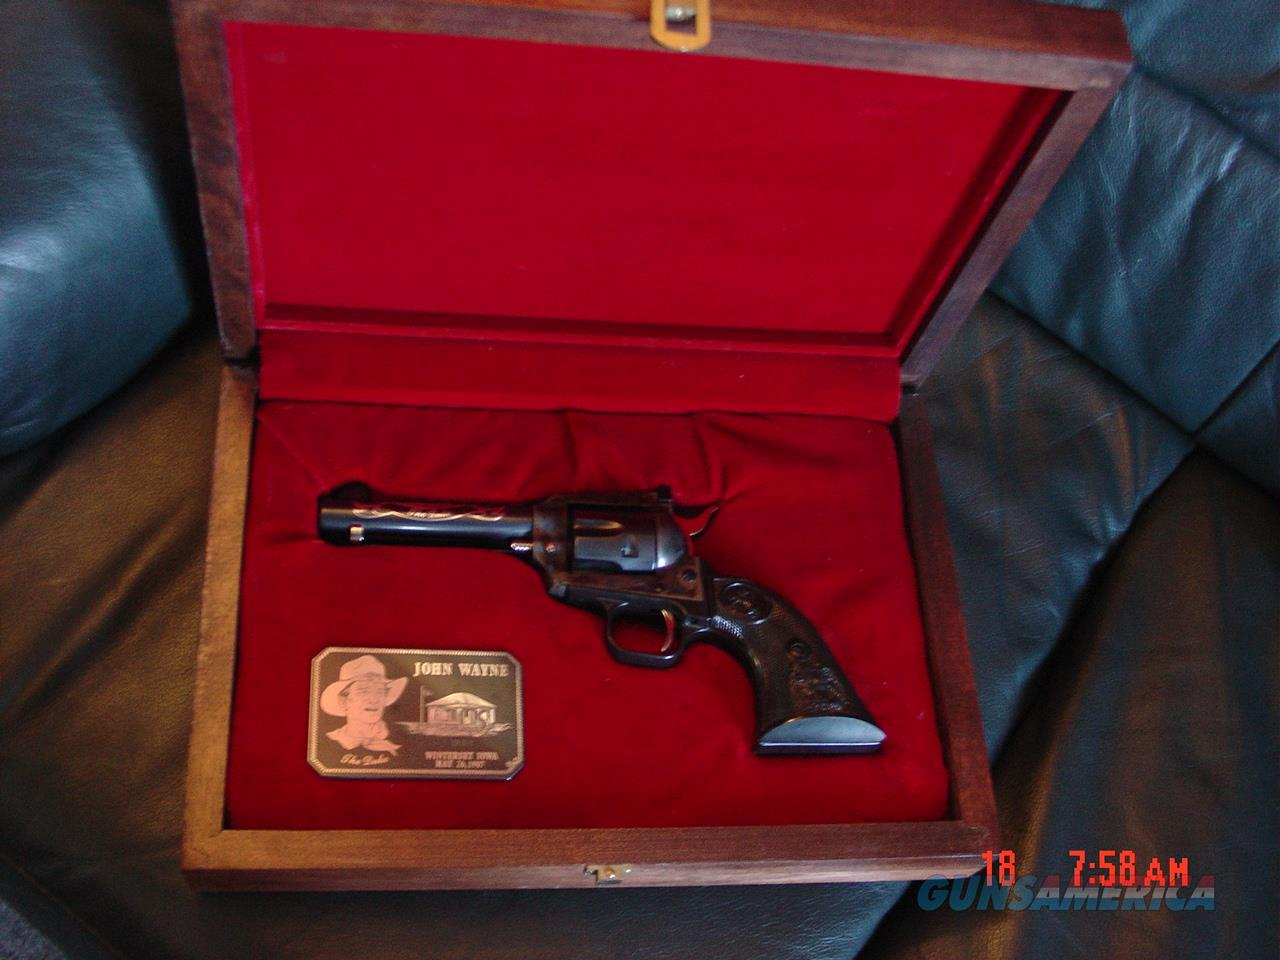 Colt John Wayne The Duke 22LR,New Frontier,sterling silver inlays & sterling plate in fitted wood case-never fired-as new !!  Guns > Pistols > Colt Commemorative Pistols